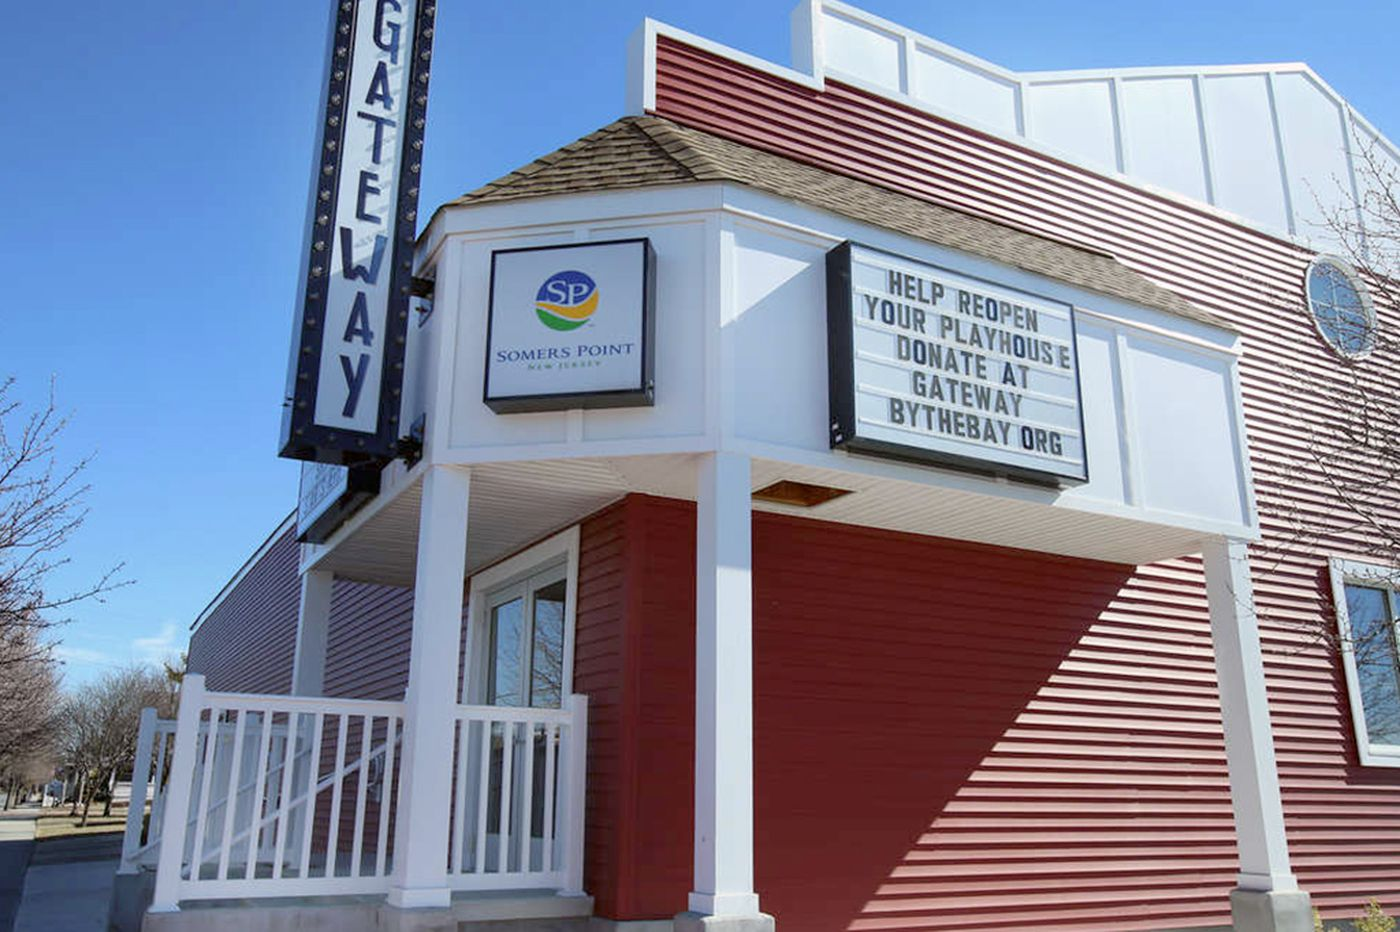 Gateway Playhouse renovation takes center stage